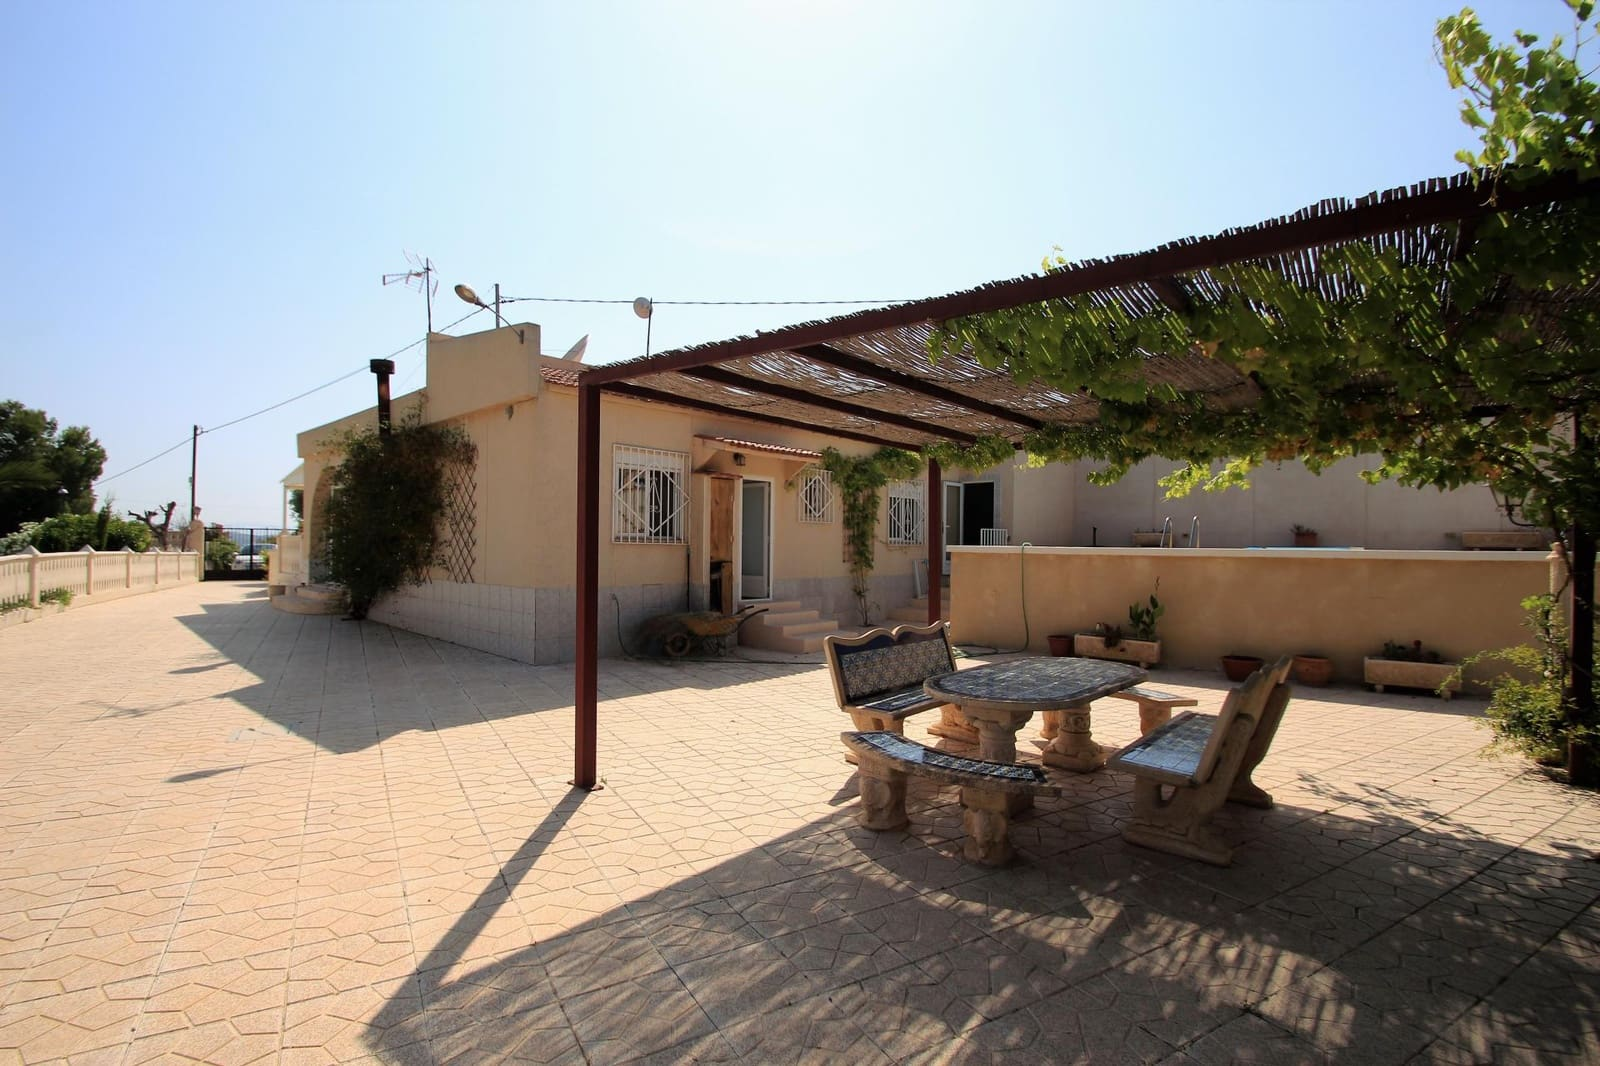 3 bedroom Finca/Country House for sale in Petrel / Petrer - € 139,995 (Ref: 4666706)